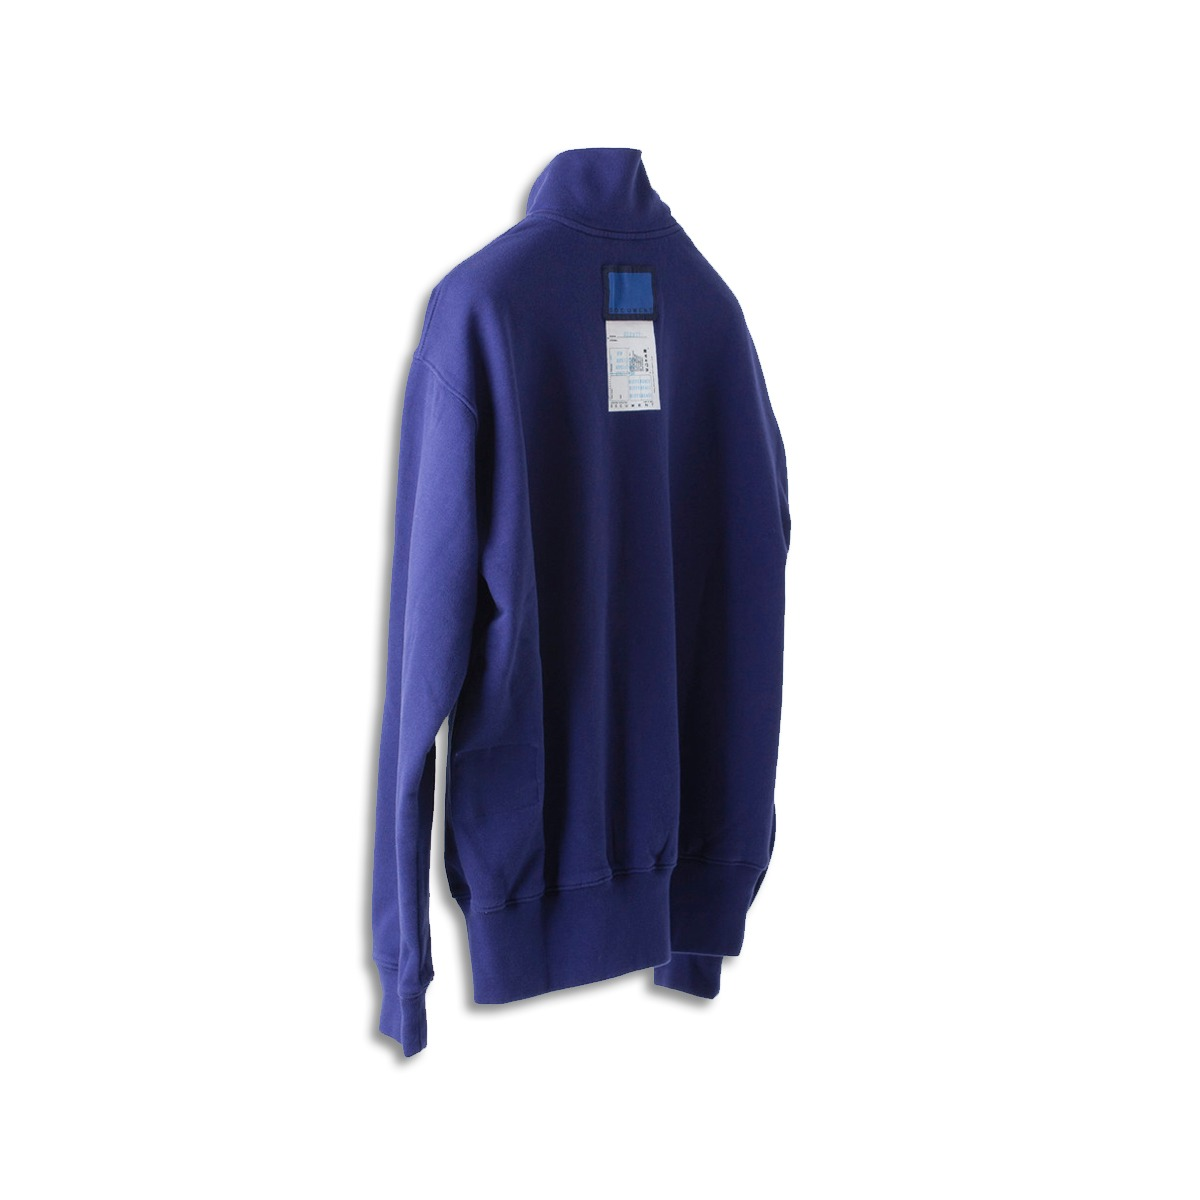 [DOCUMENT] CHRISTMAS TURTLE NECK SWEAT JERSEY 'BLUE'